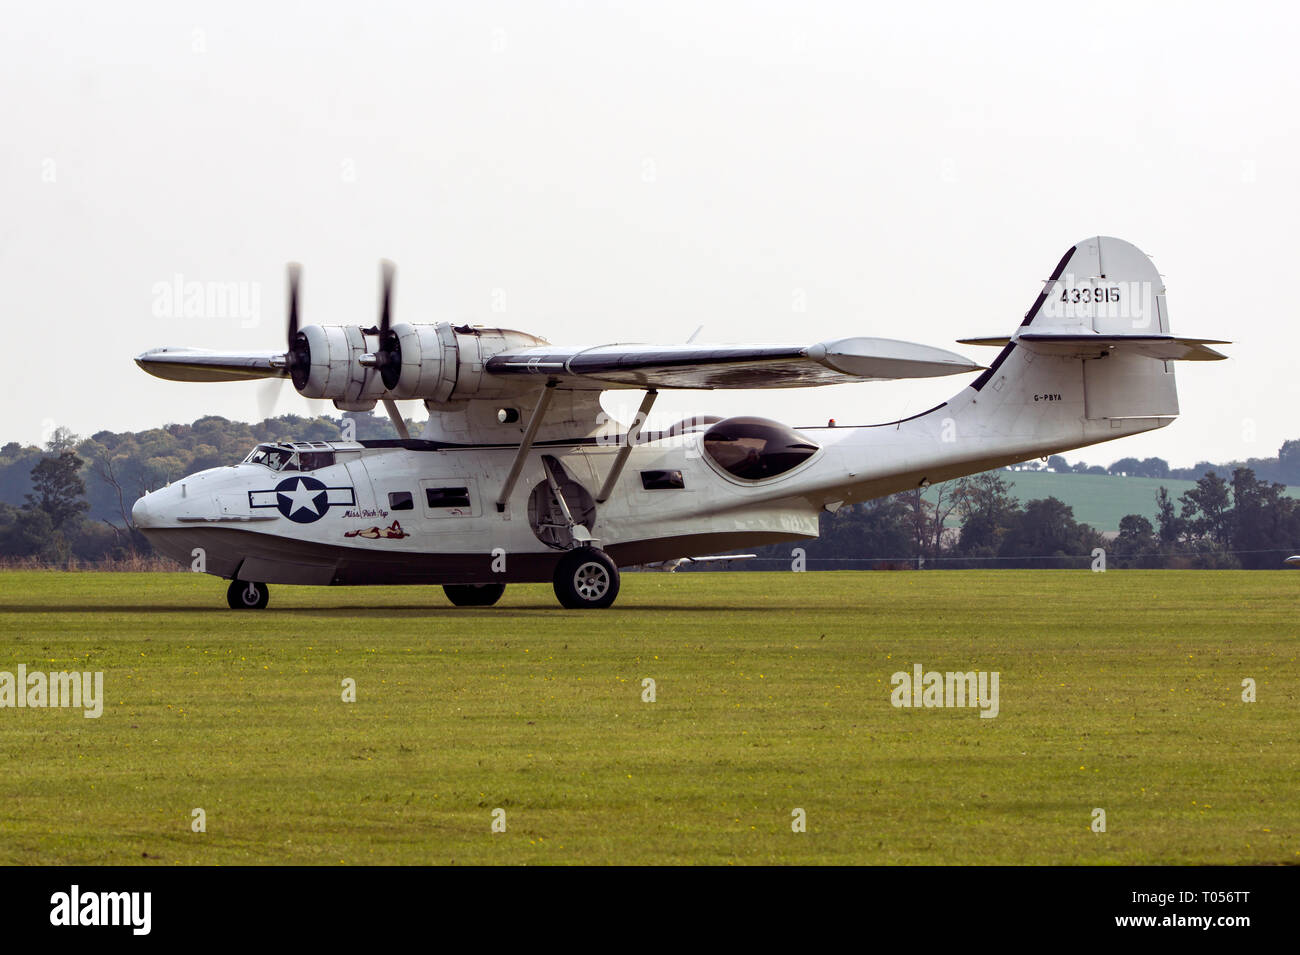 A Consolidated PBY-5A landing at Duxford airfield - Stock Image